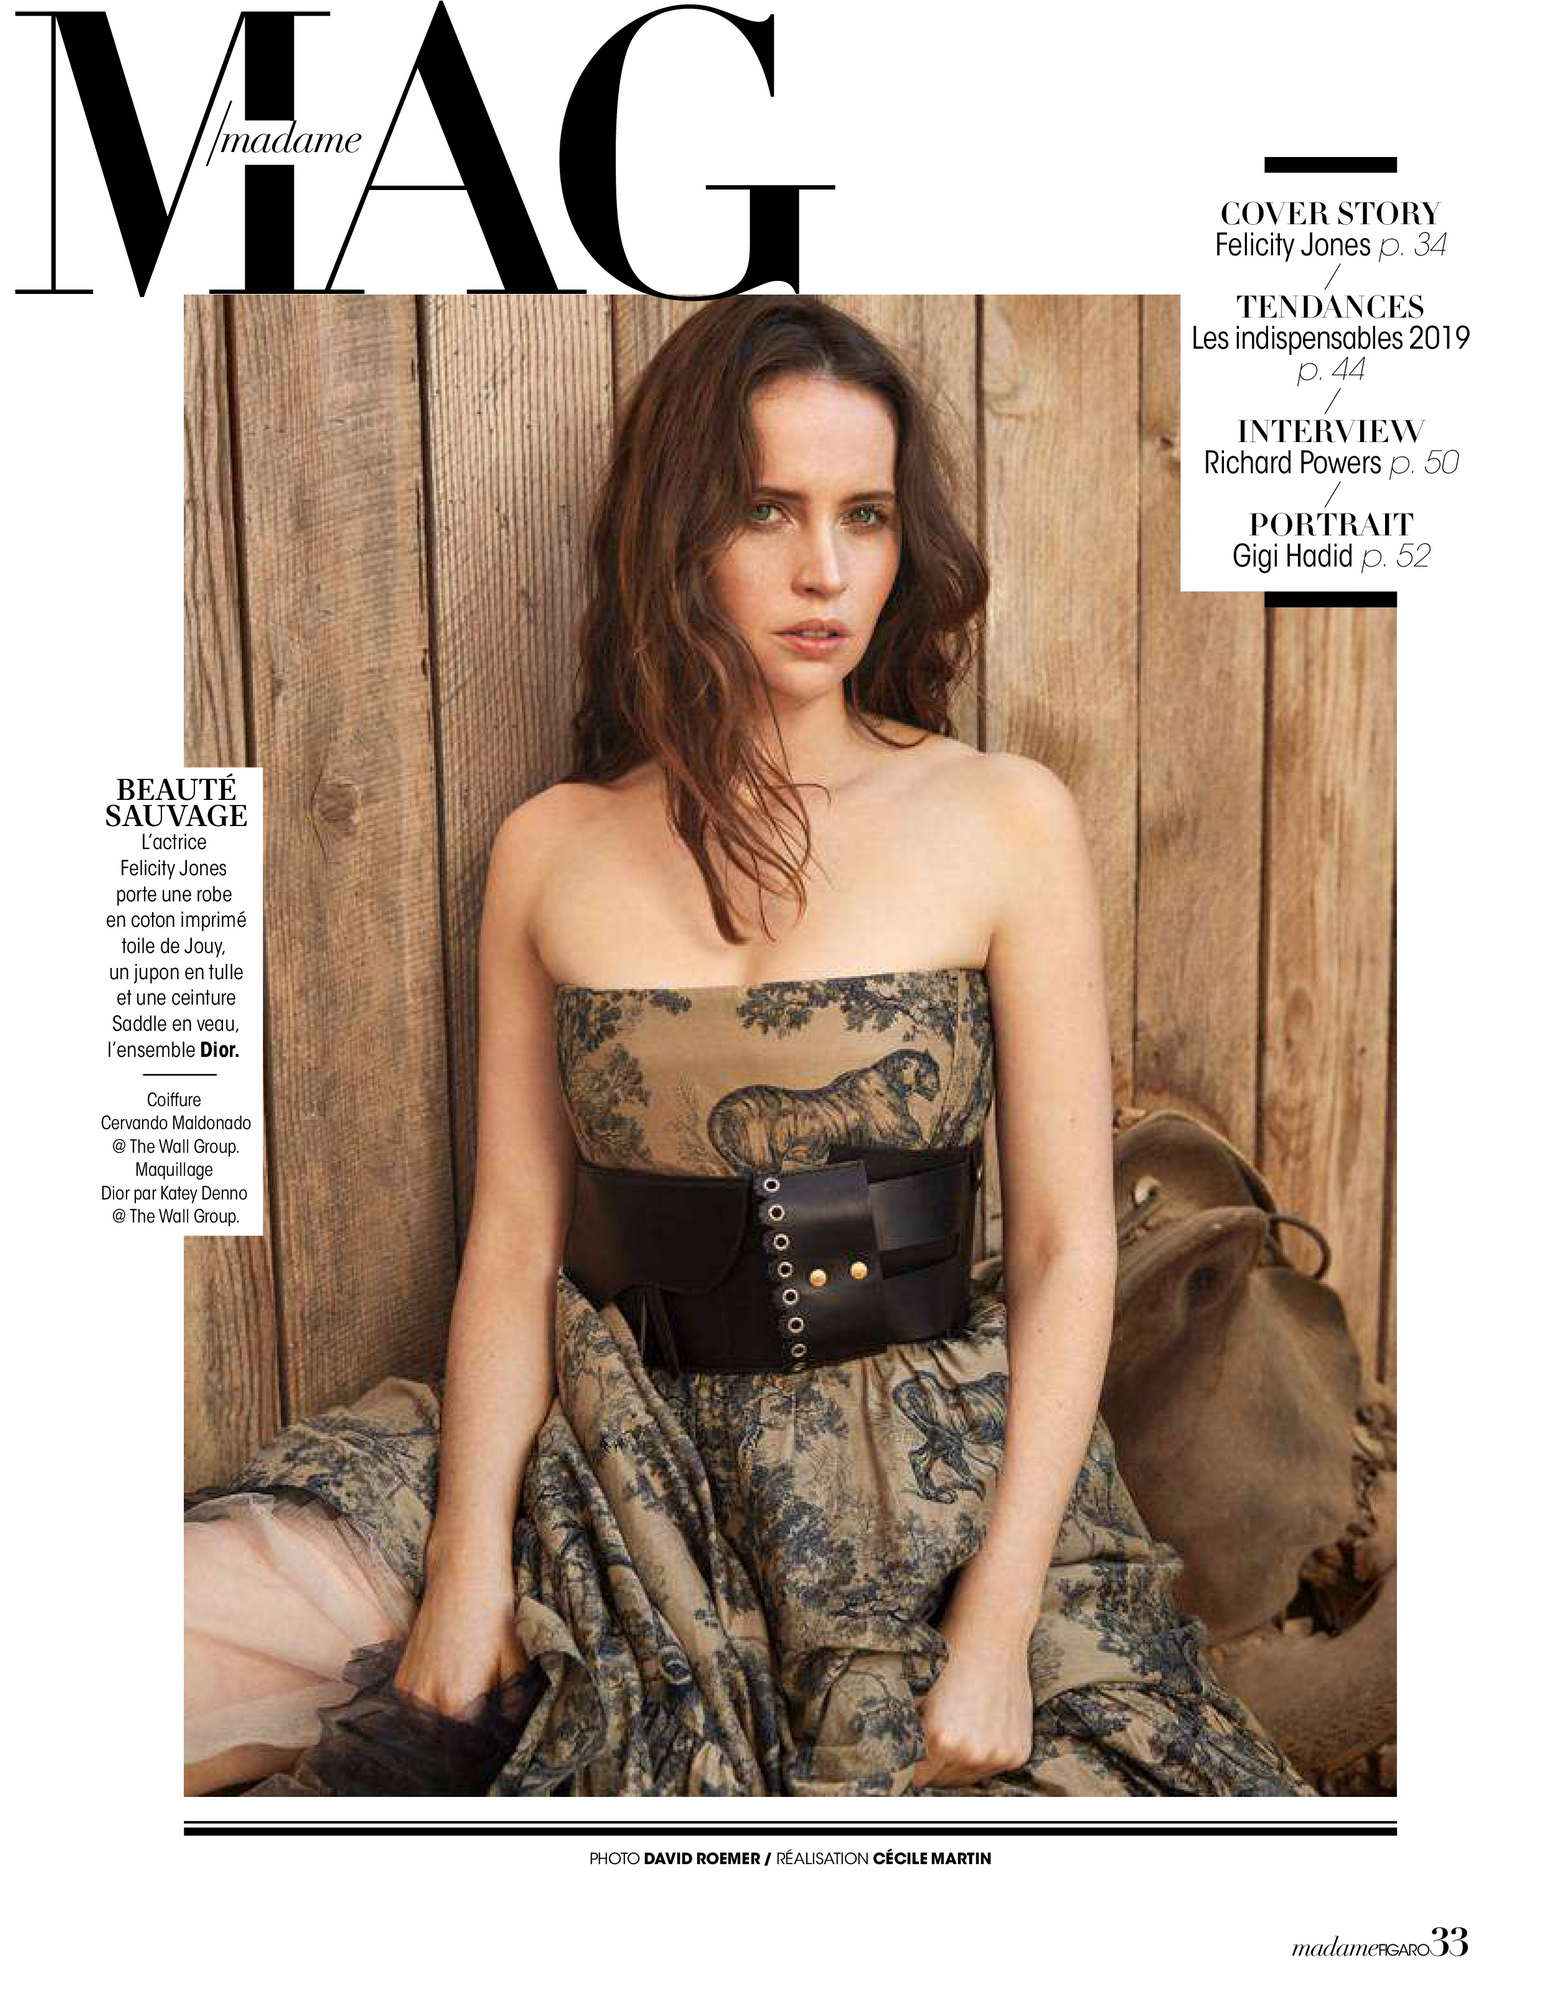 Felicity-Jones-Madame-Figaro-28-December-20182.jpg